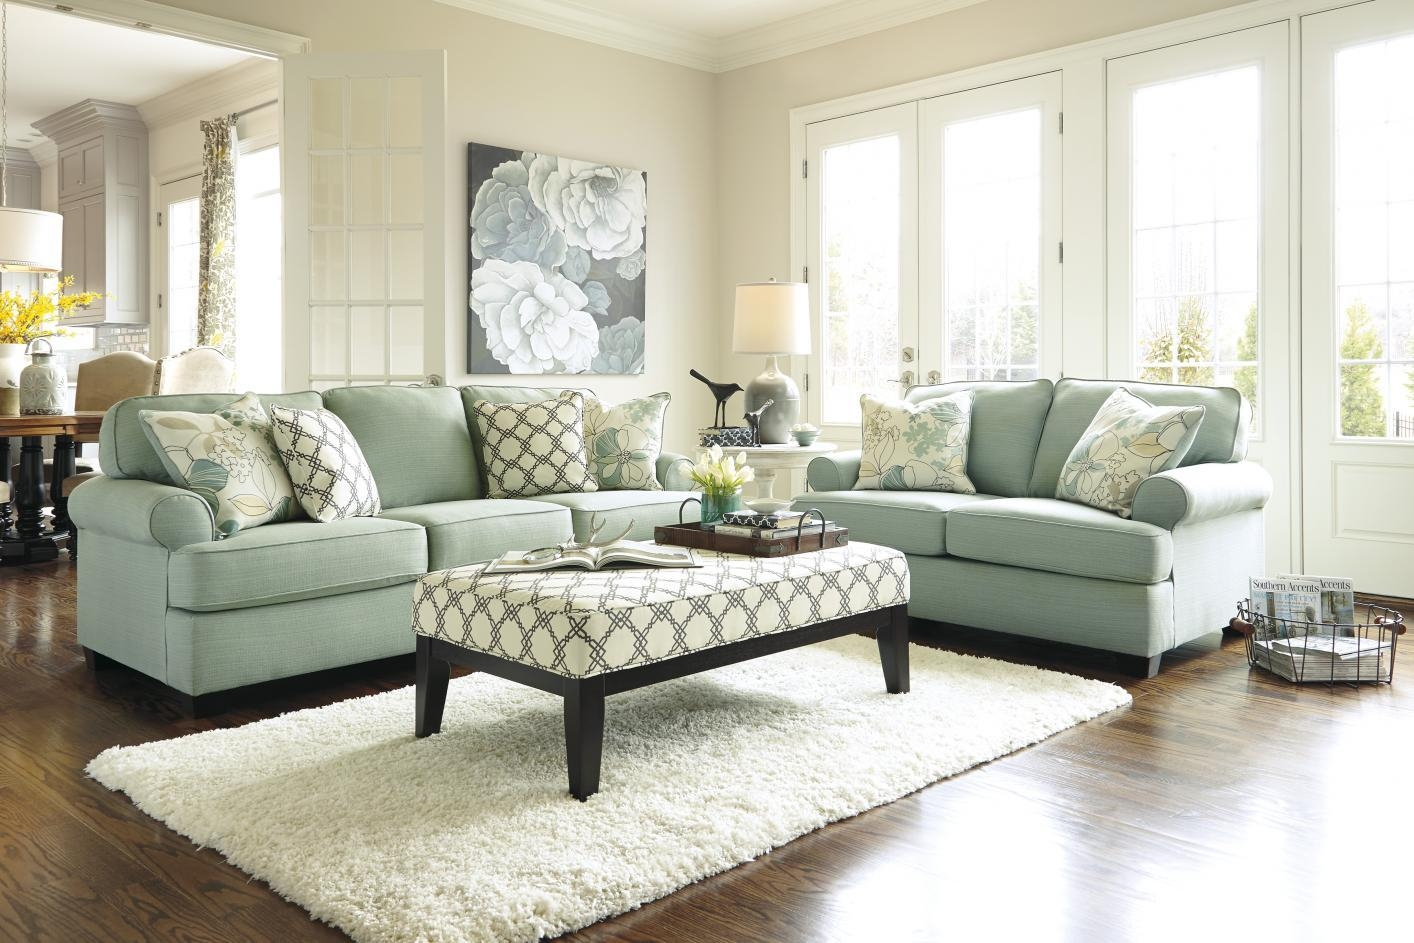 20 Best Seafoam Green Couches | Sofa Ideas